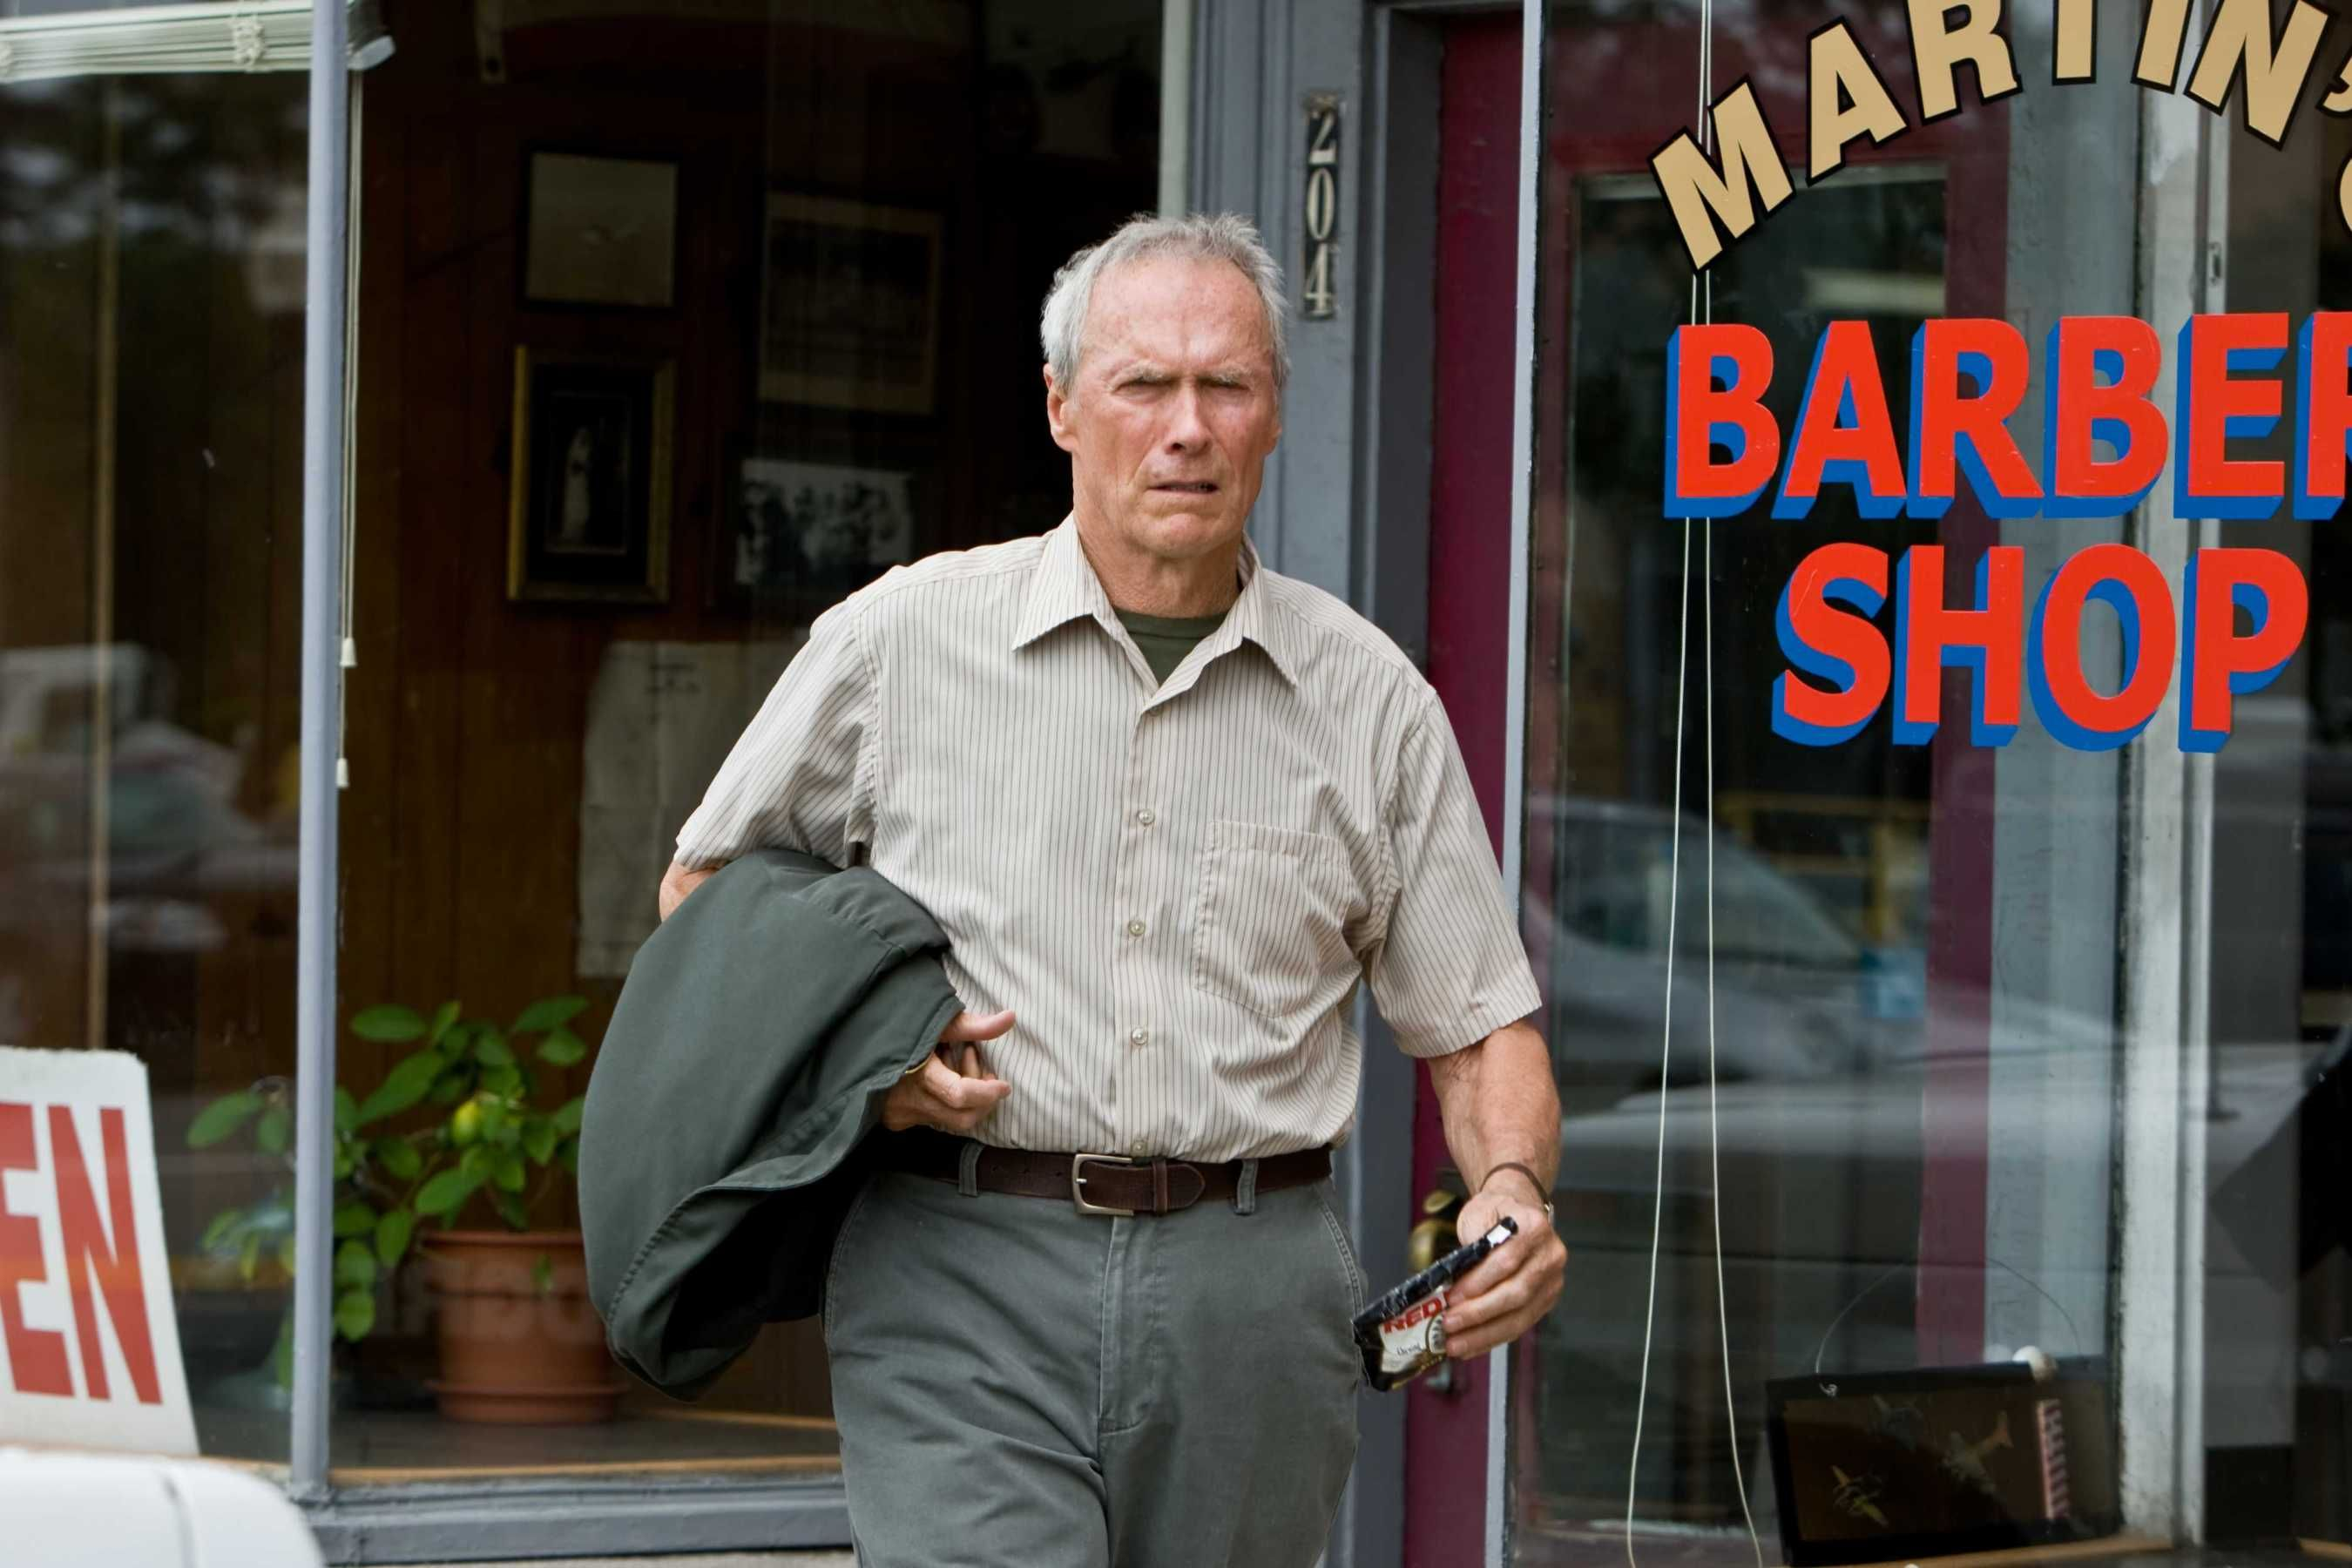 an analysis of the movie gran torino directed by clint eastwood Box office gross of clint eastwood-directed films  only three others cracked the  $100 million-mark: gran torino at $148 million, along with.